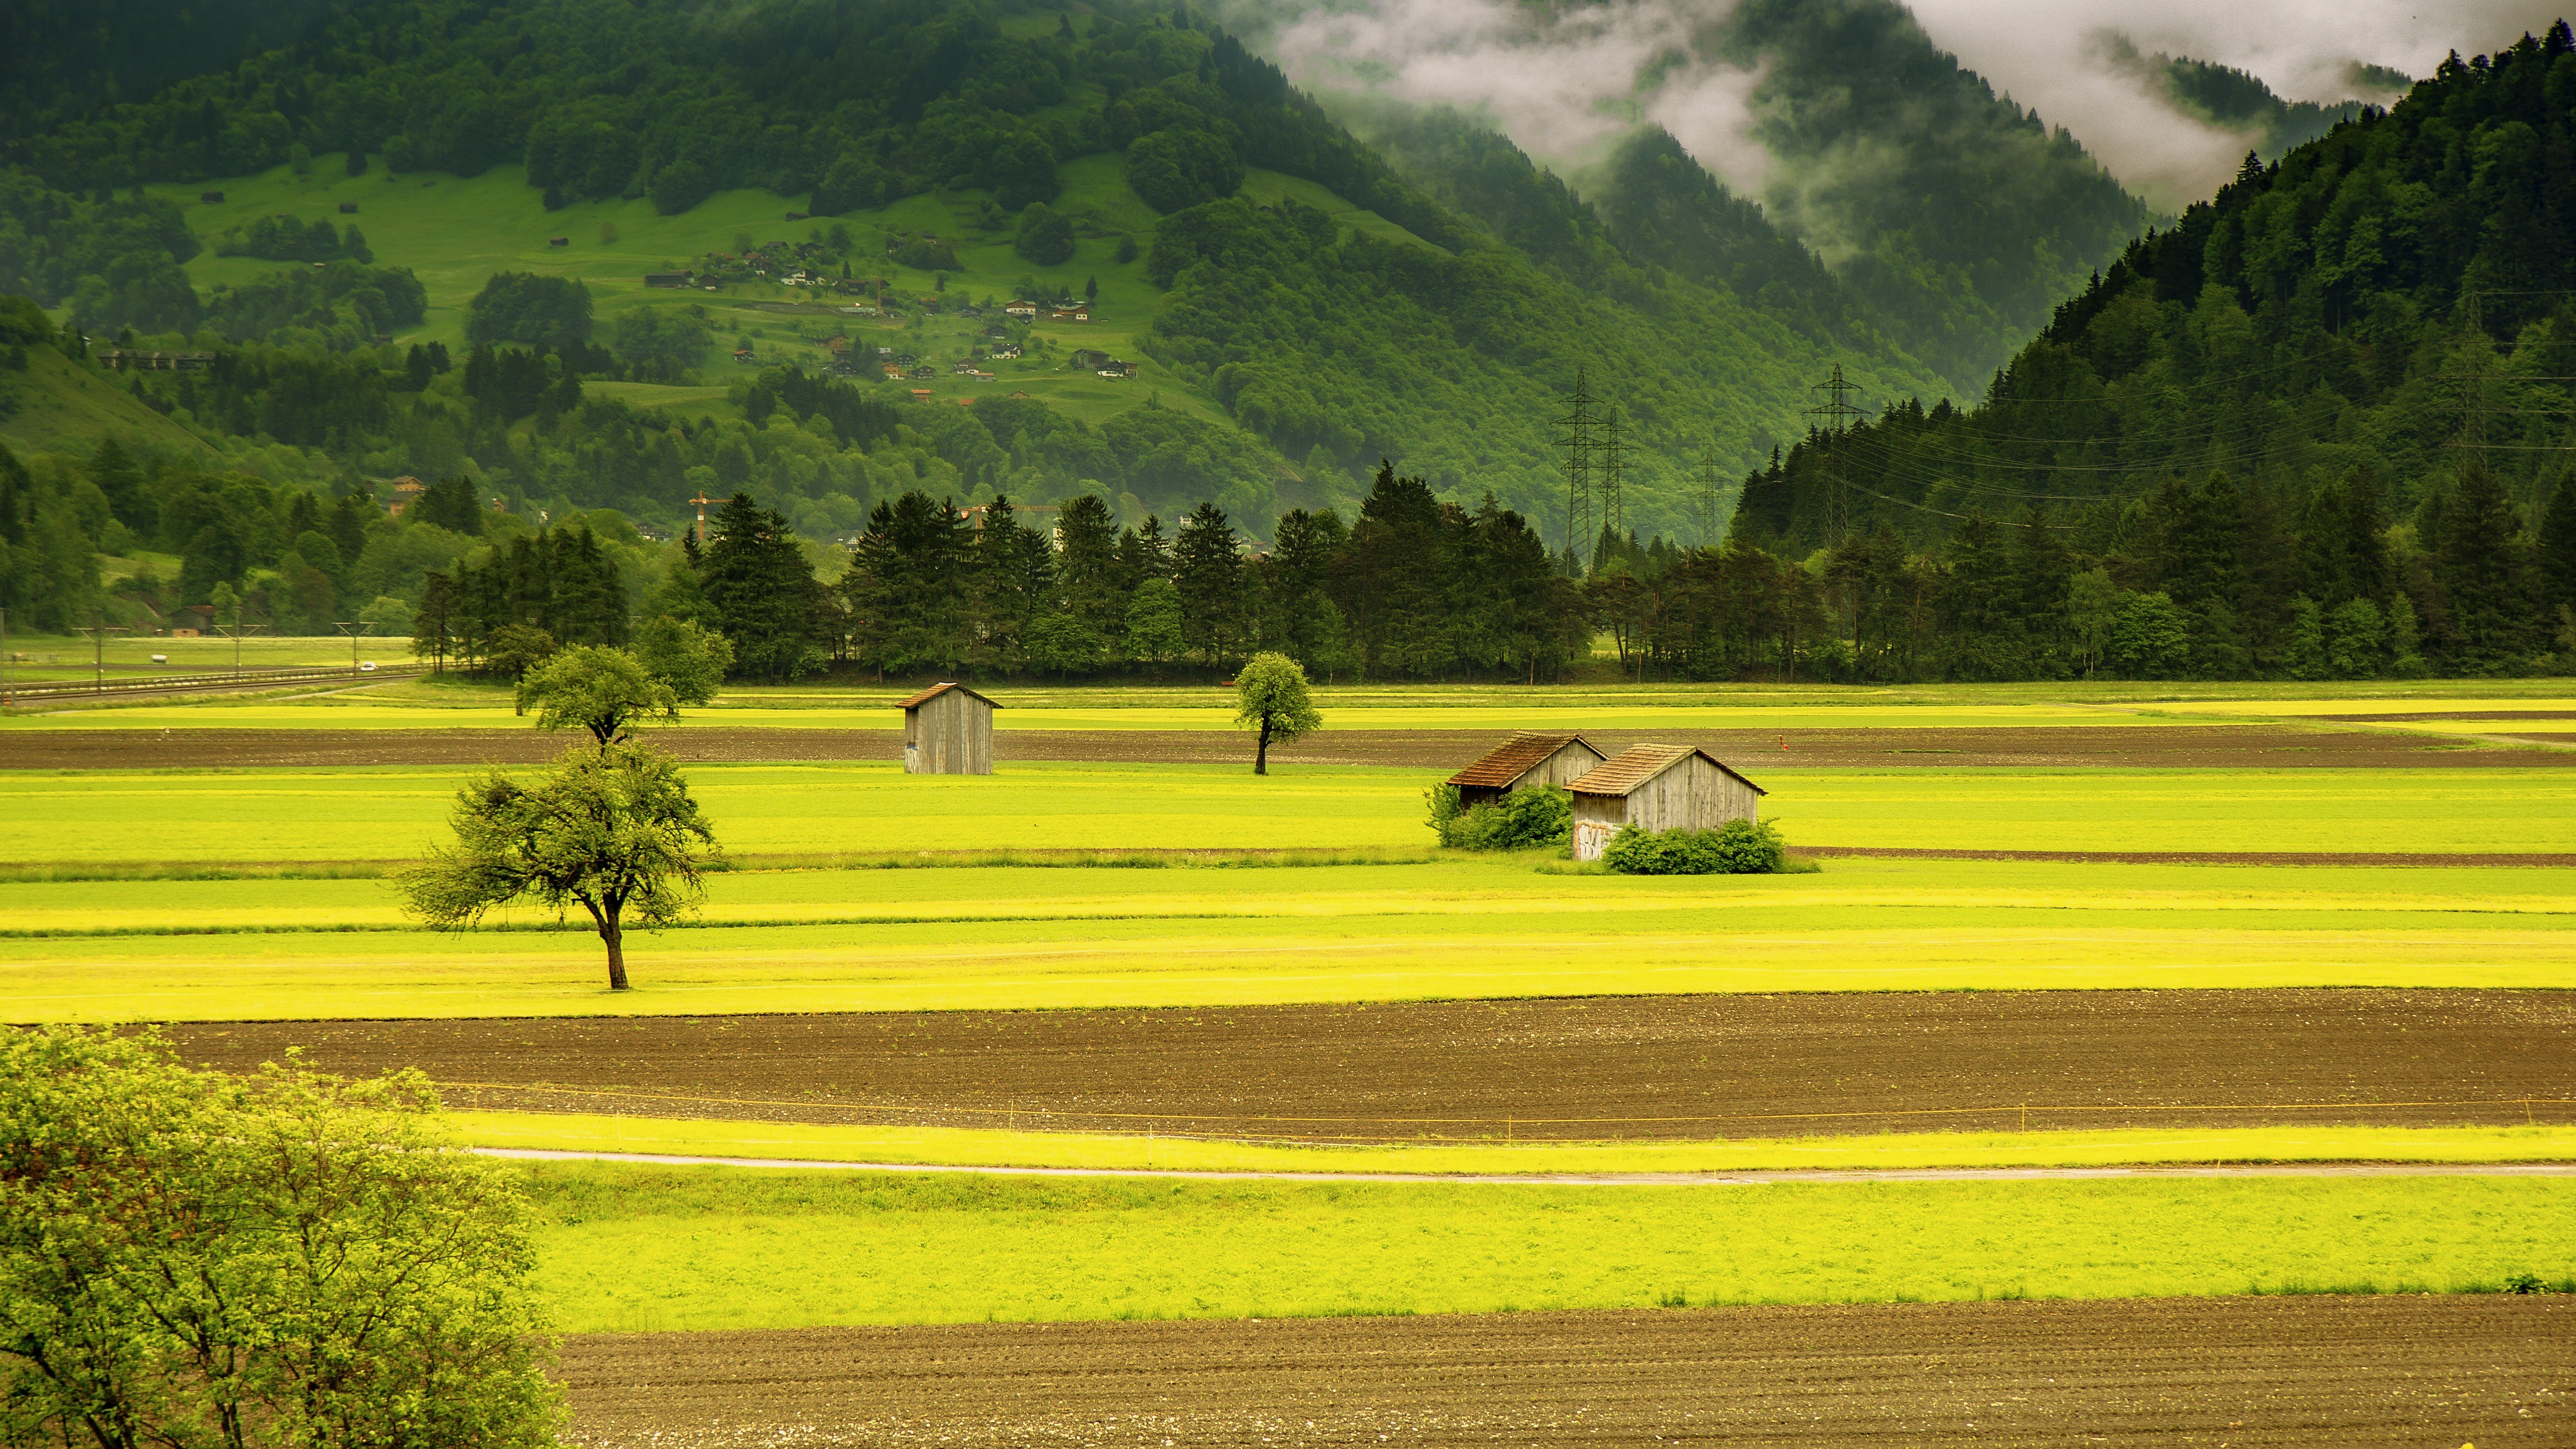 Brown House in the Middle of Green Field Grass Near Mountains